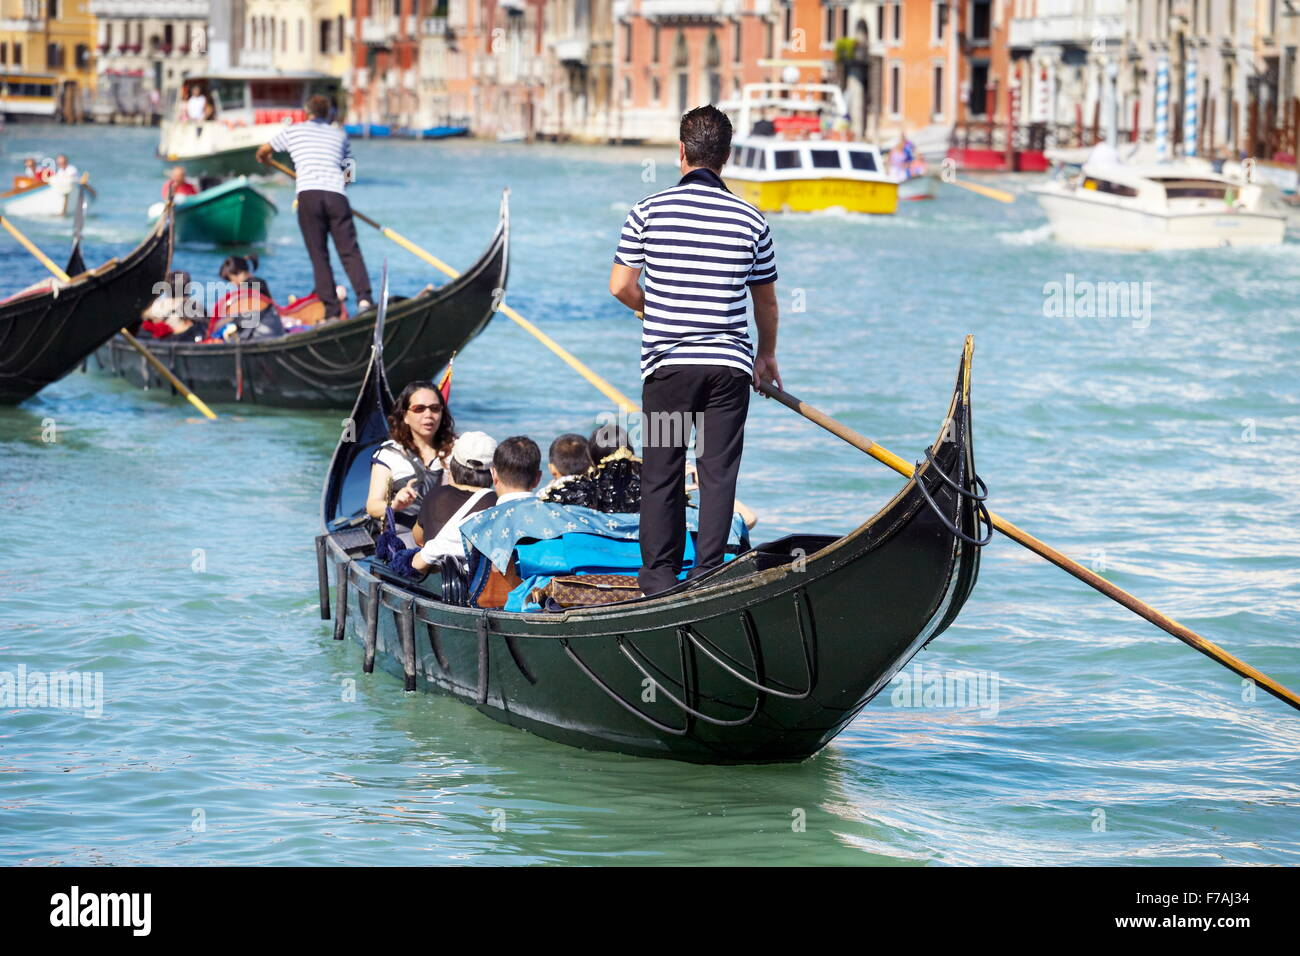 Venetian Grand Canal (Canal Grande) - tourists in gondola exploring Venice, Italy - Stock Image